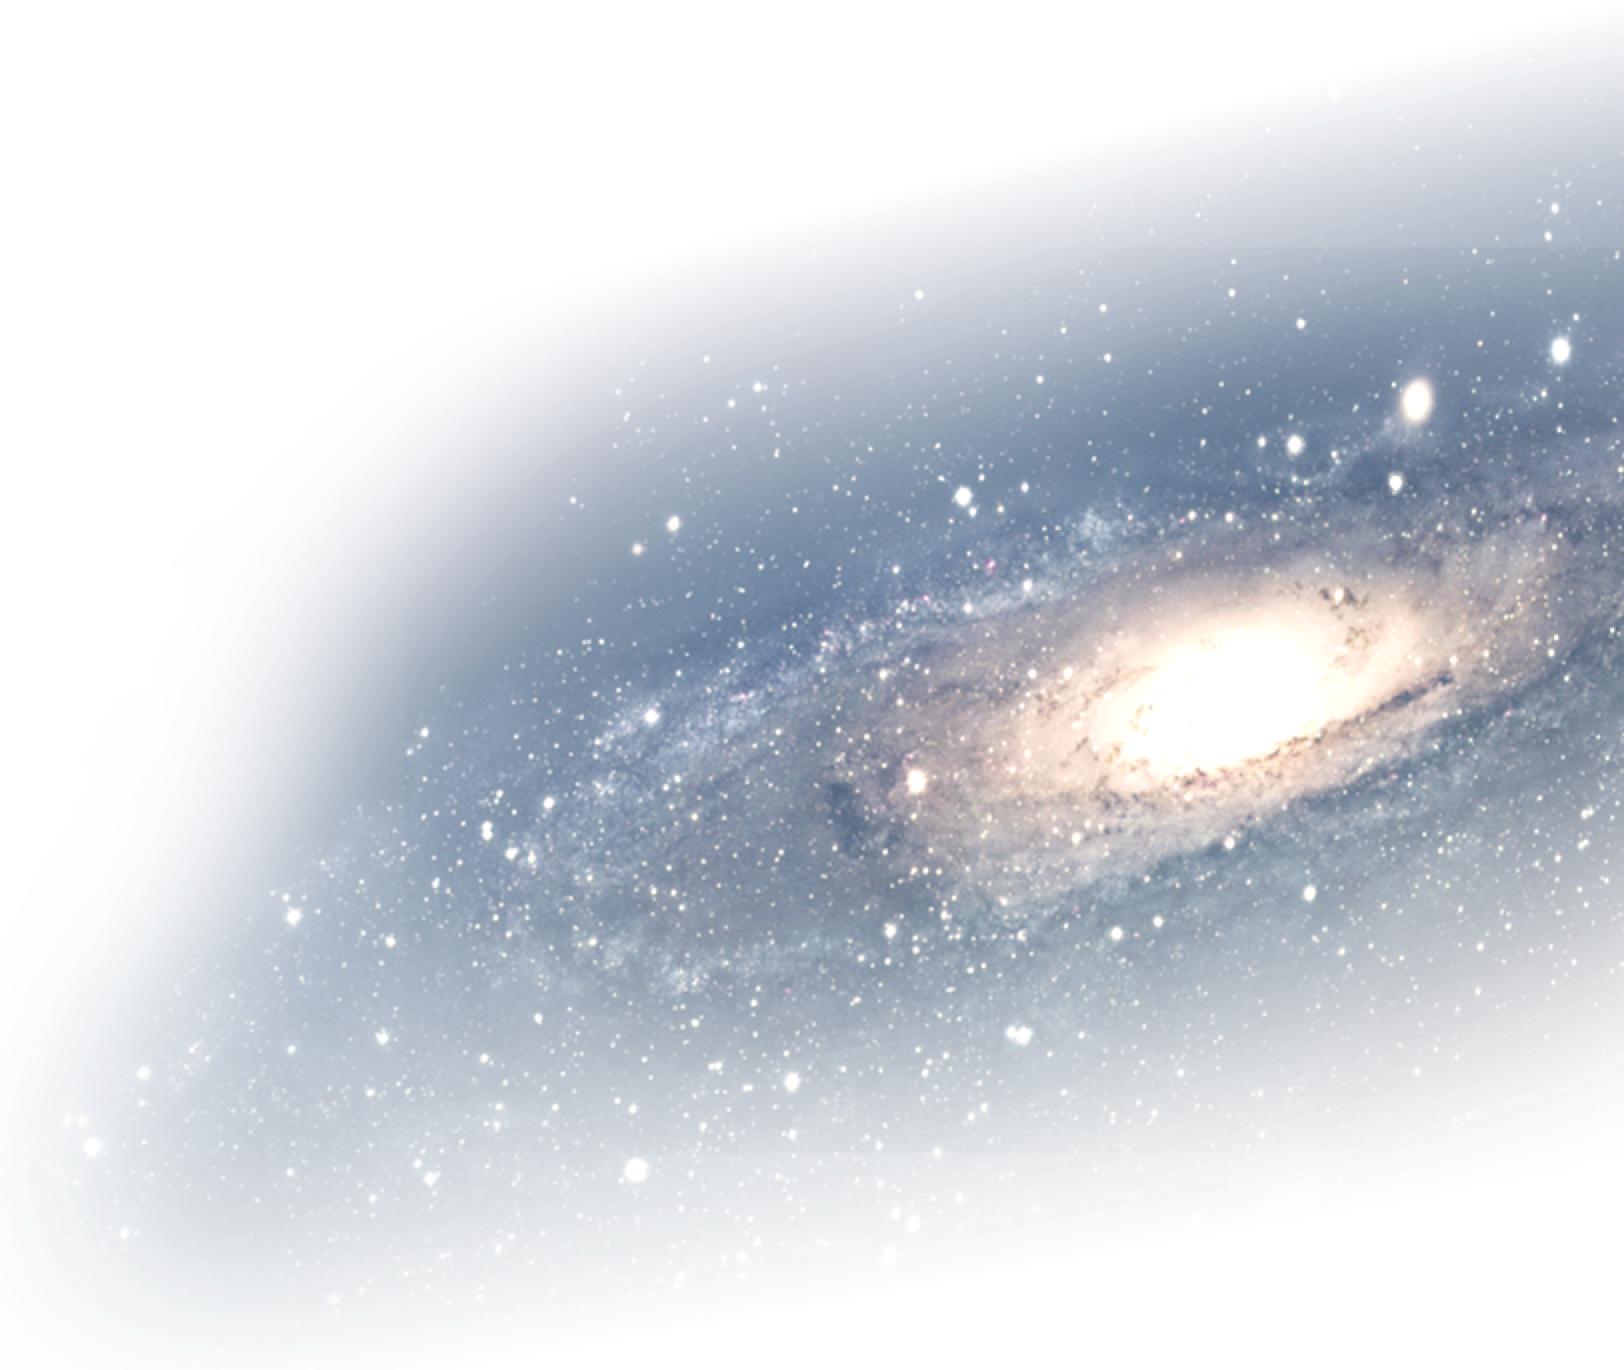 Galaxy background png. Transparent images all